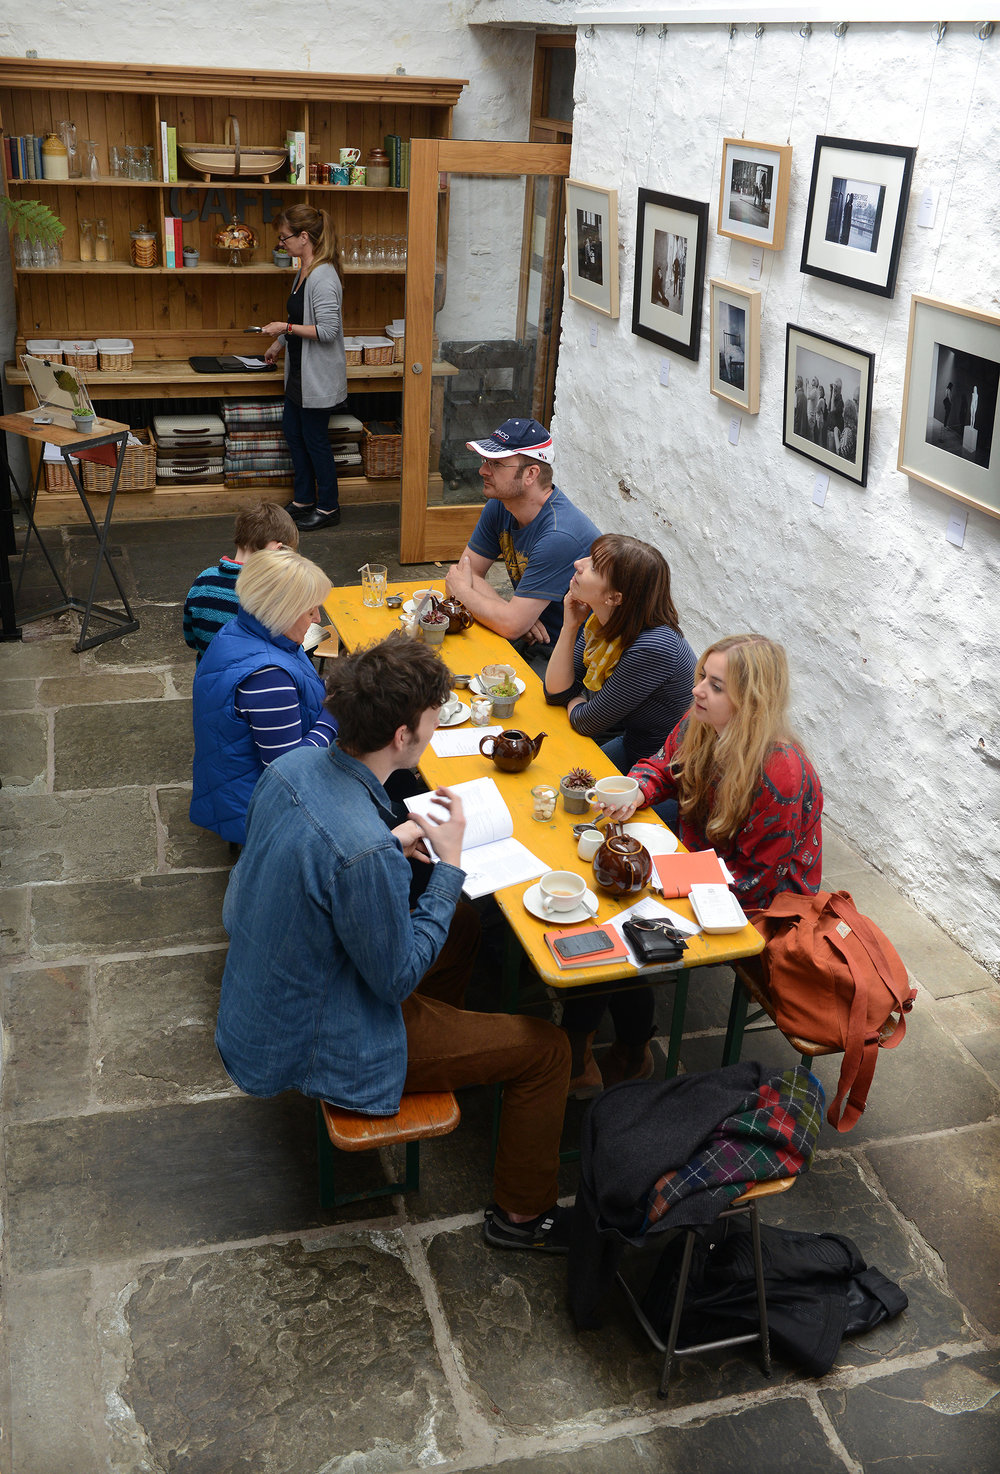 Wales, Iso-Britannia, Hay-on-Wye, Richard Booth's Bookshop